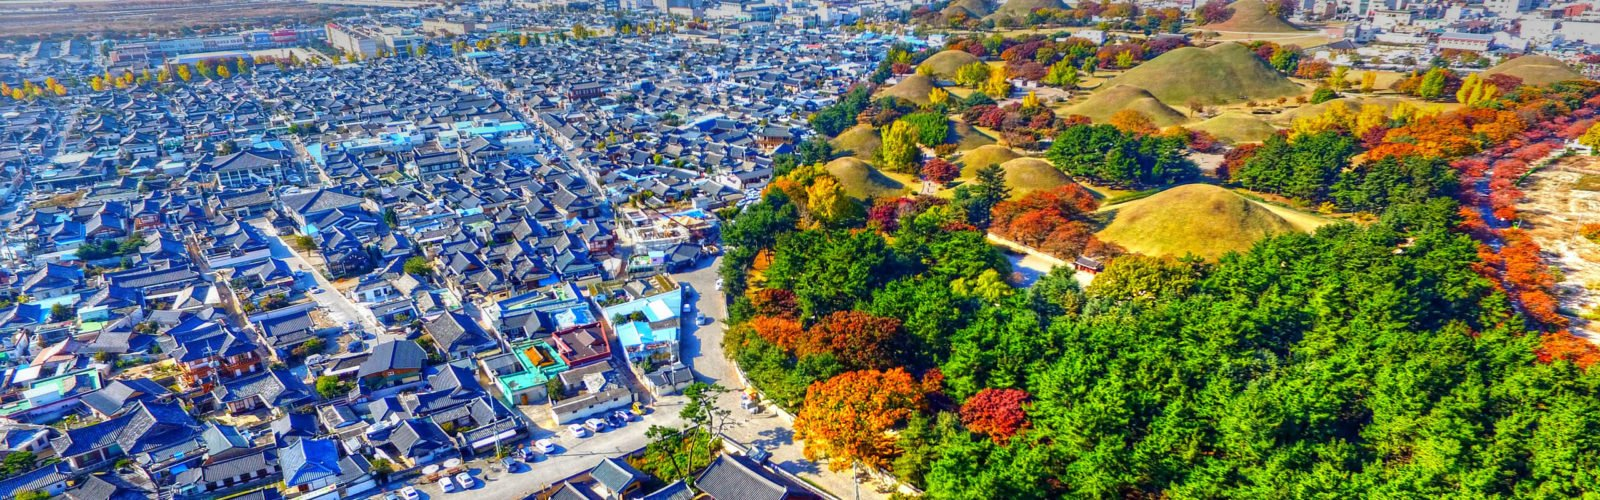 gyeongju-district-south-korea